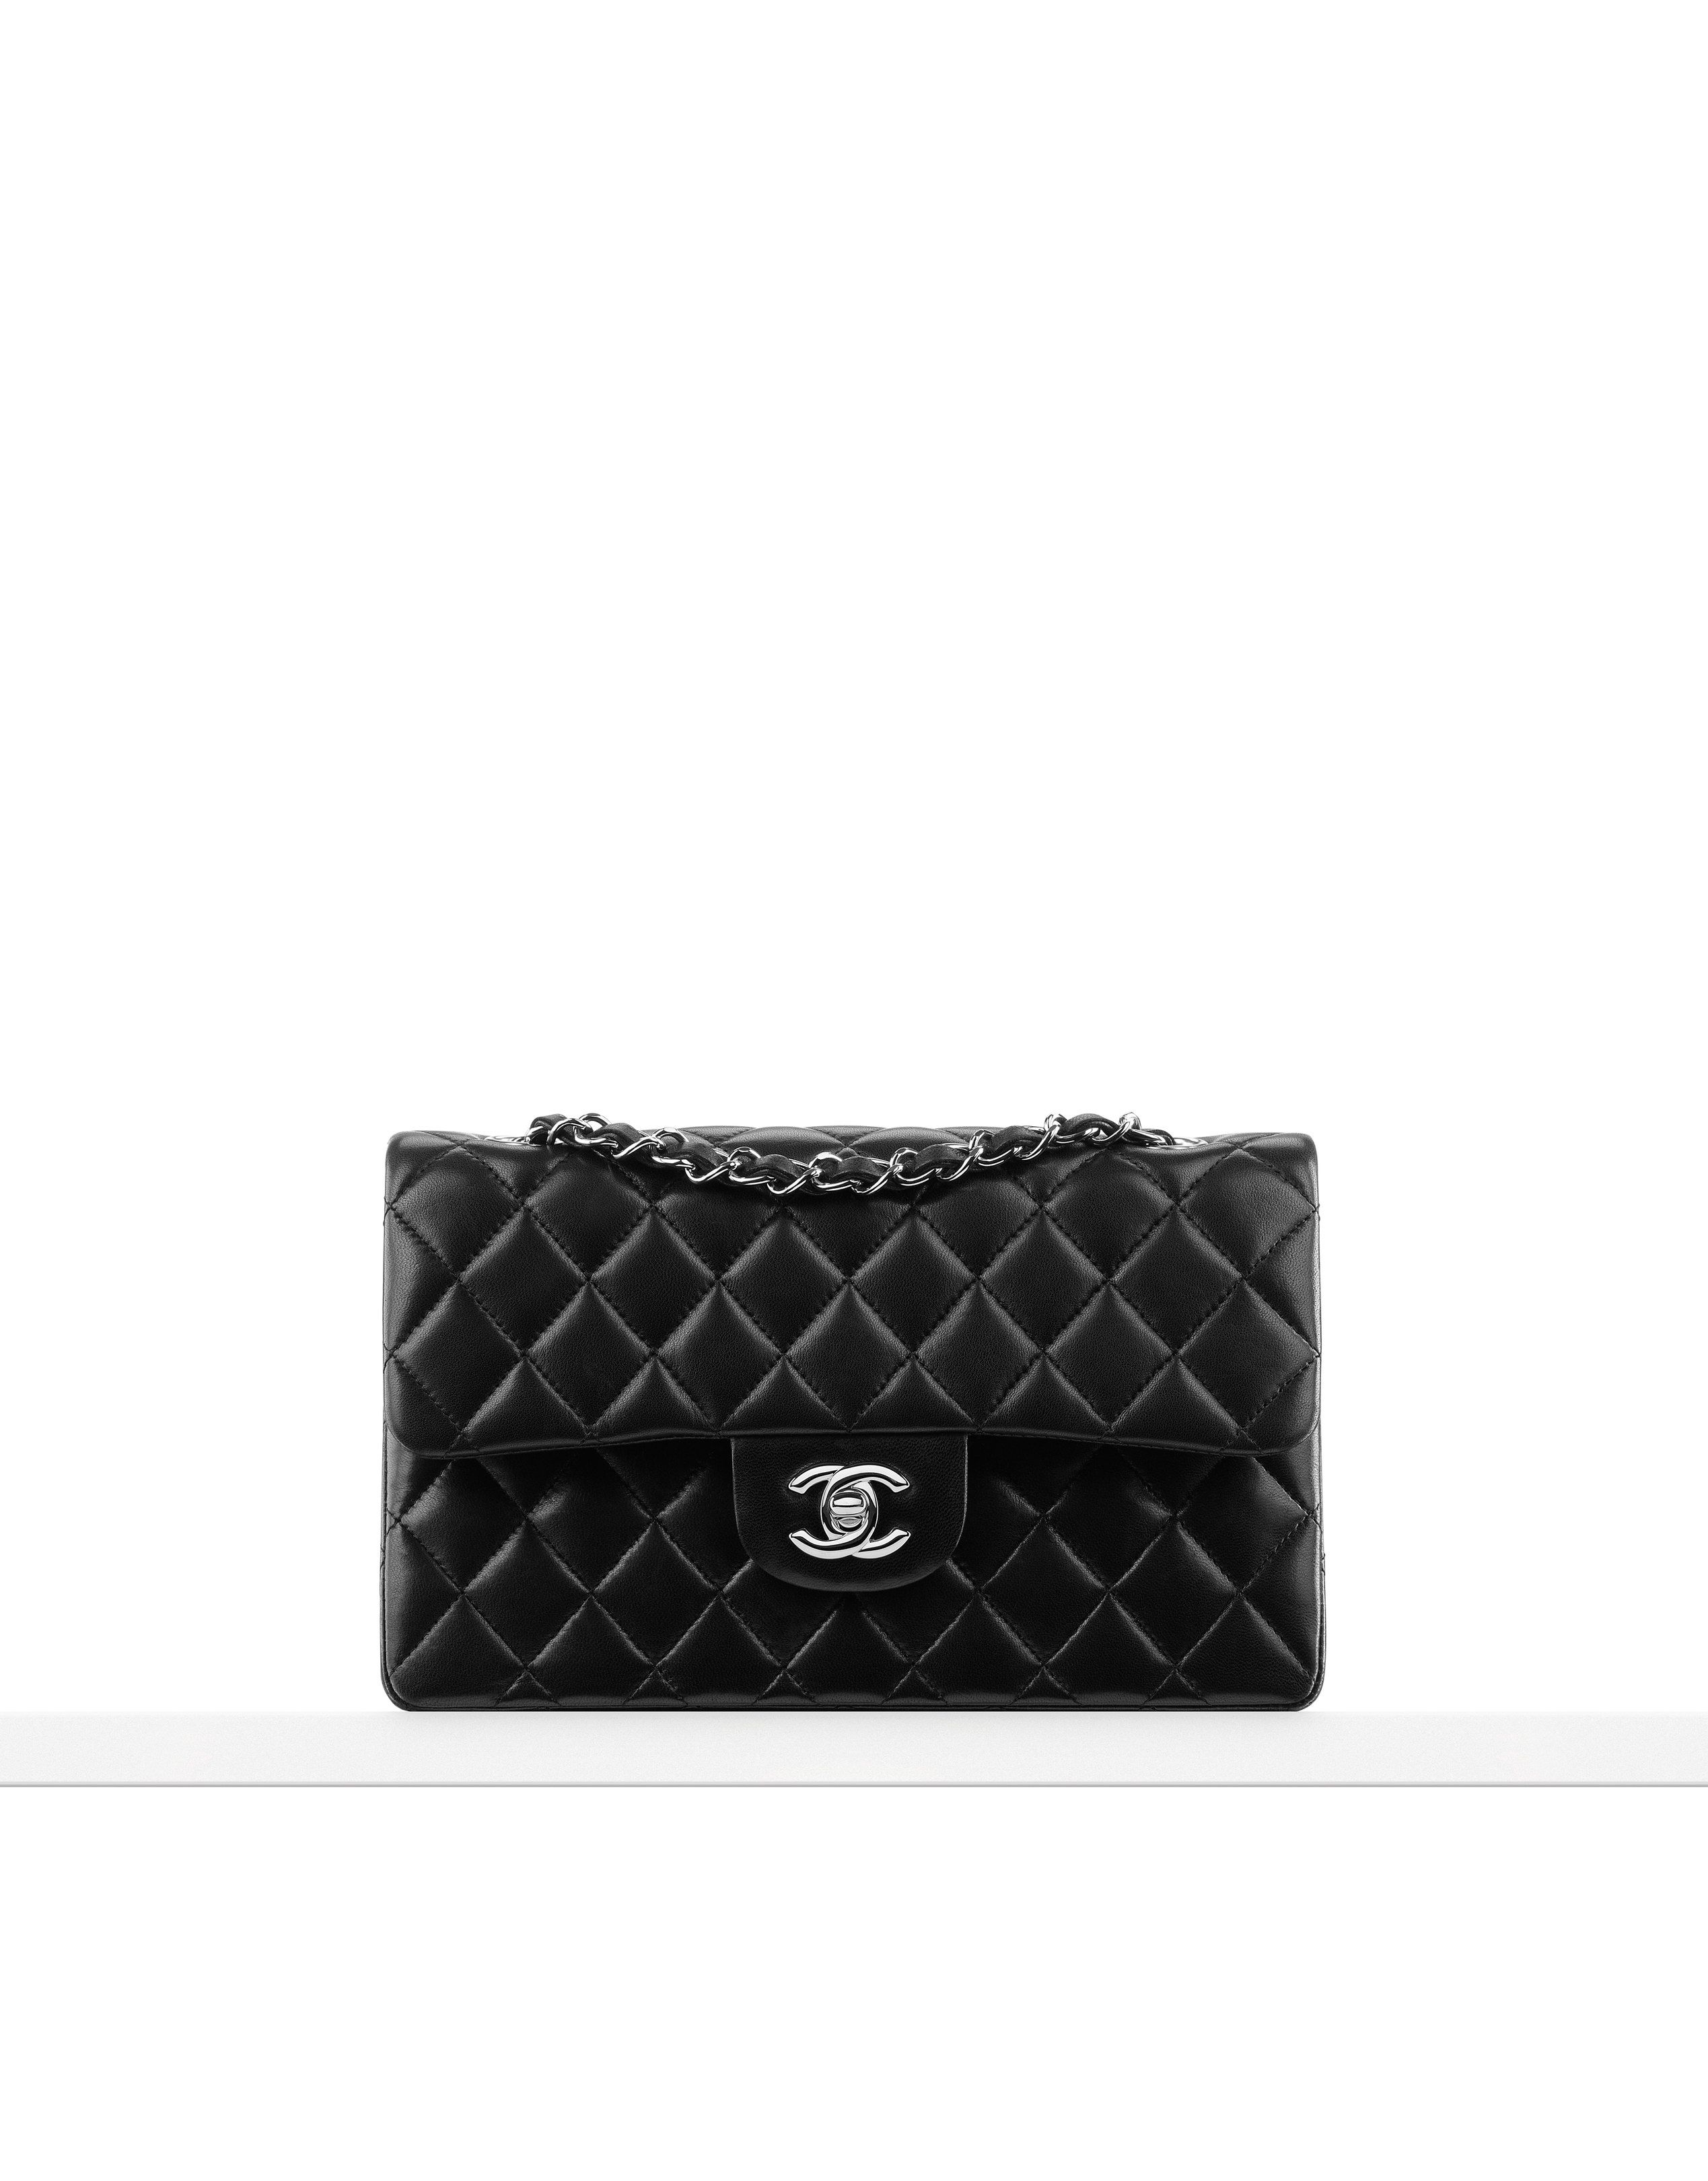 7fd09146f5bb Small classic flap bag in quilted... - CHANEL | Style | Chanel ...